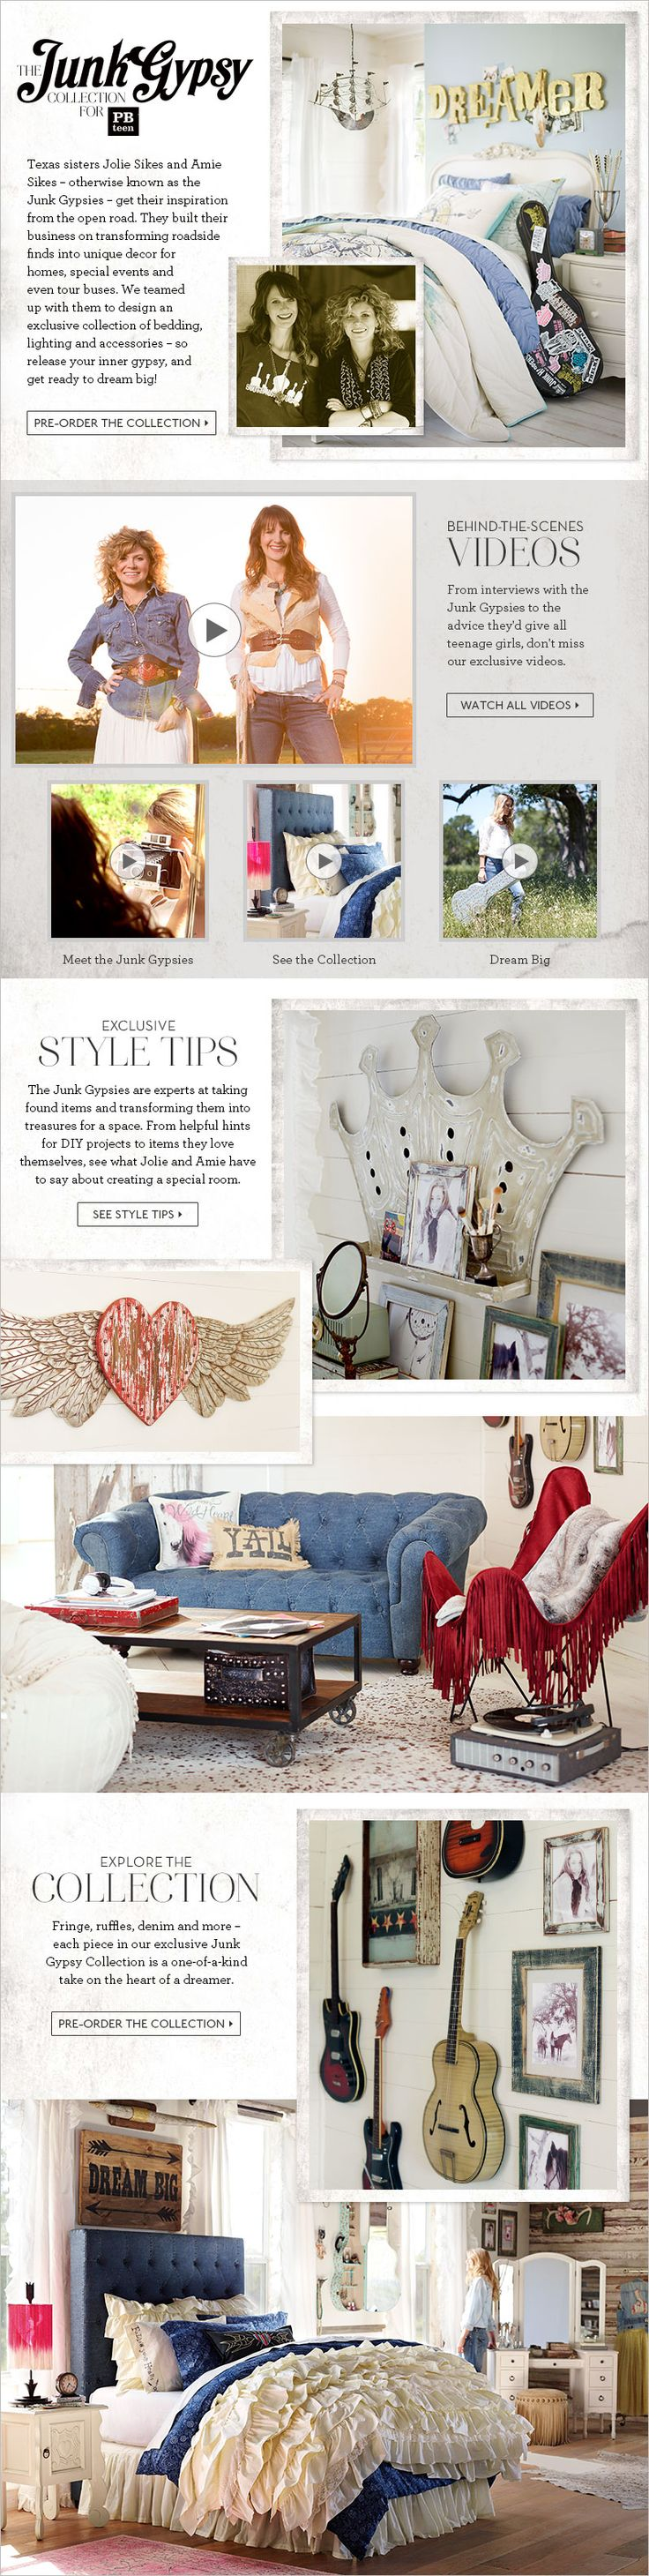 99 best Taiten Junk Gypsy Room images on Pinterest | Home ideas ...